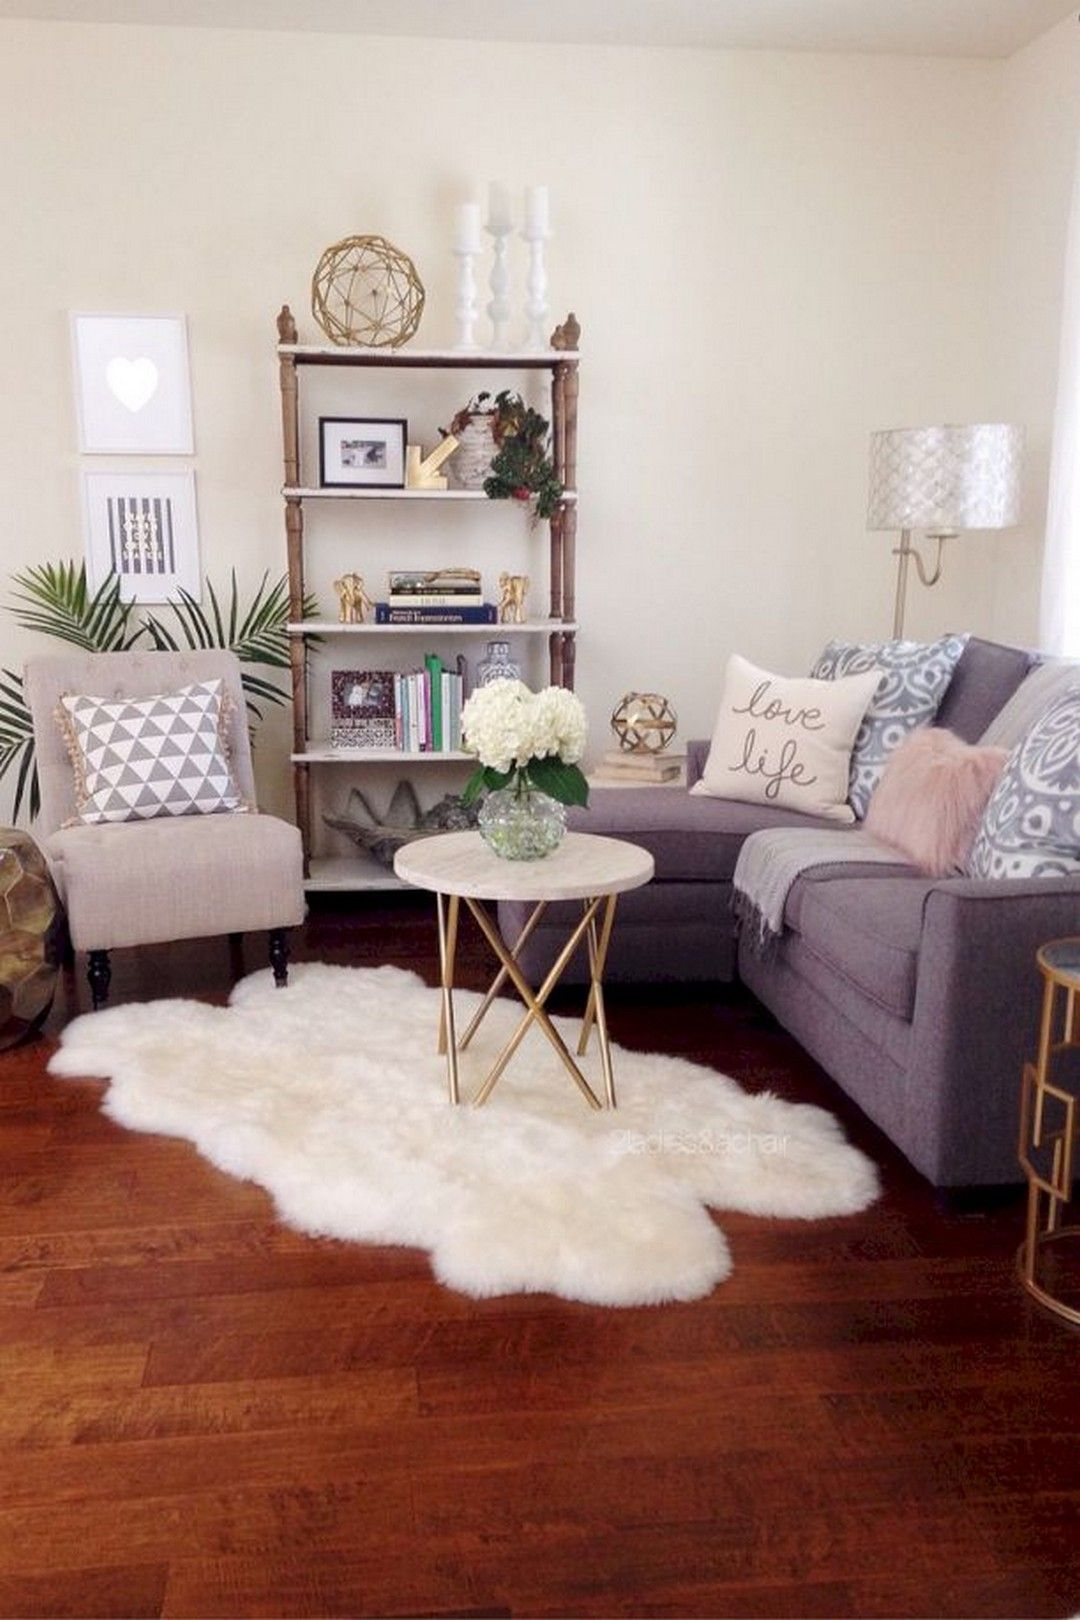 Cozy Small Apartment Decorating Ideas On A Budget Decomagz Small Living Room Decor Small Apartment Living Room Living Room Decor Apartment